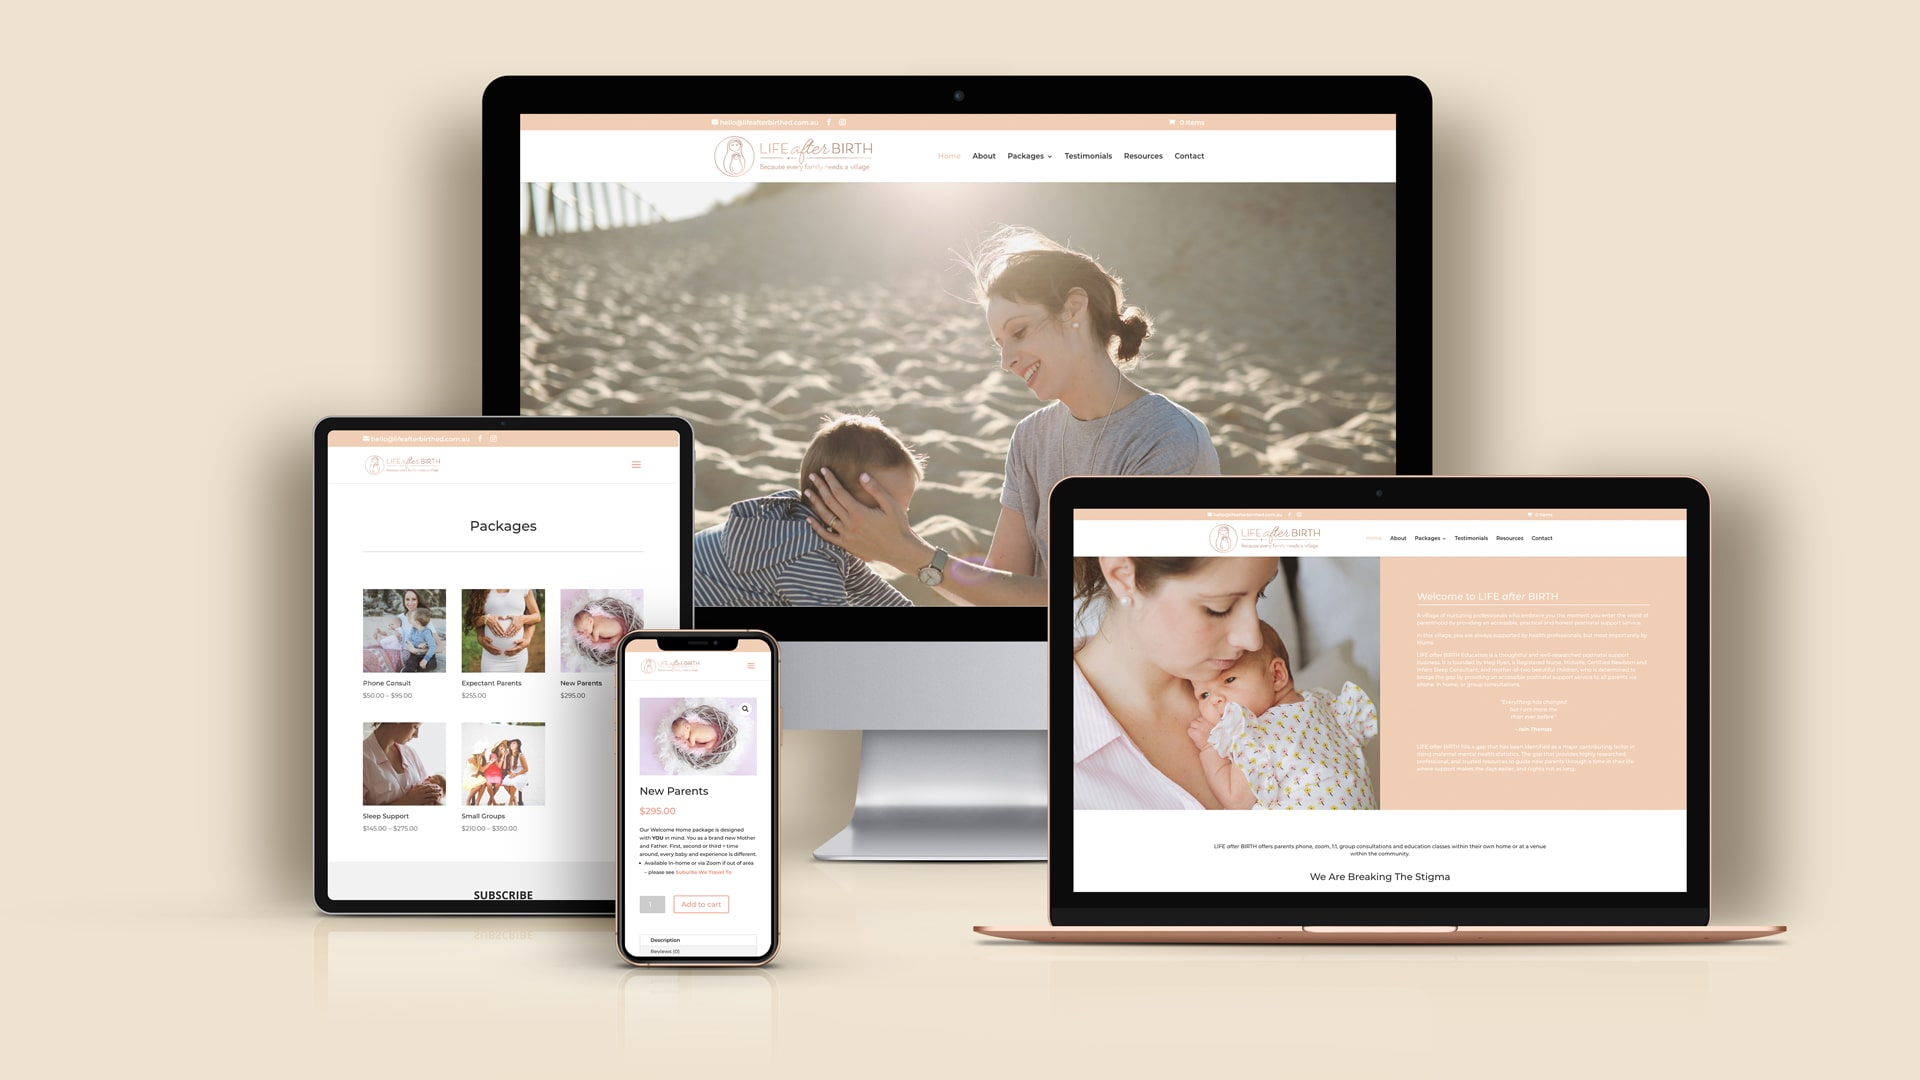 Lumina Design House Project : Life after Birth - eCommerce Website Design